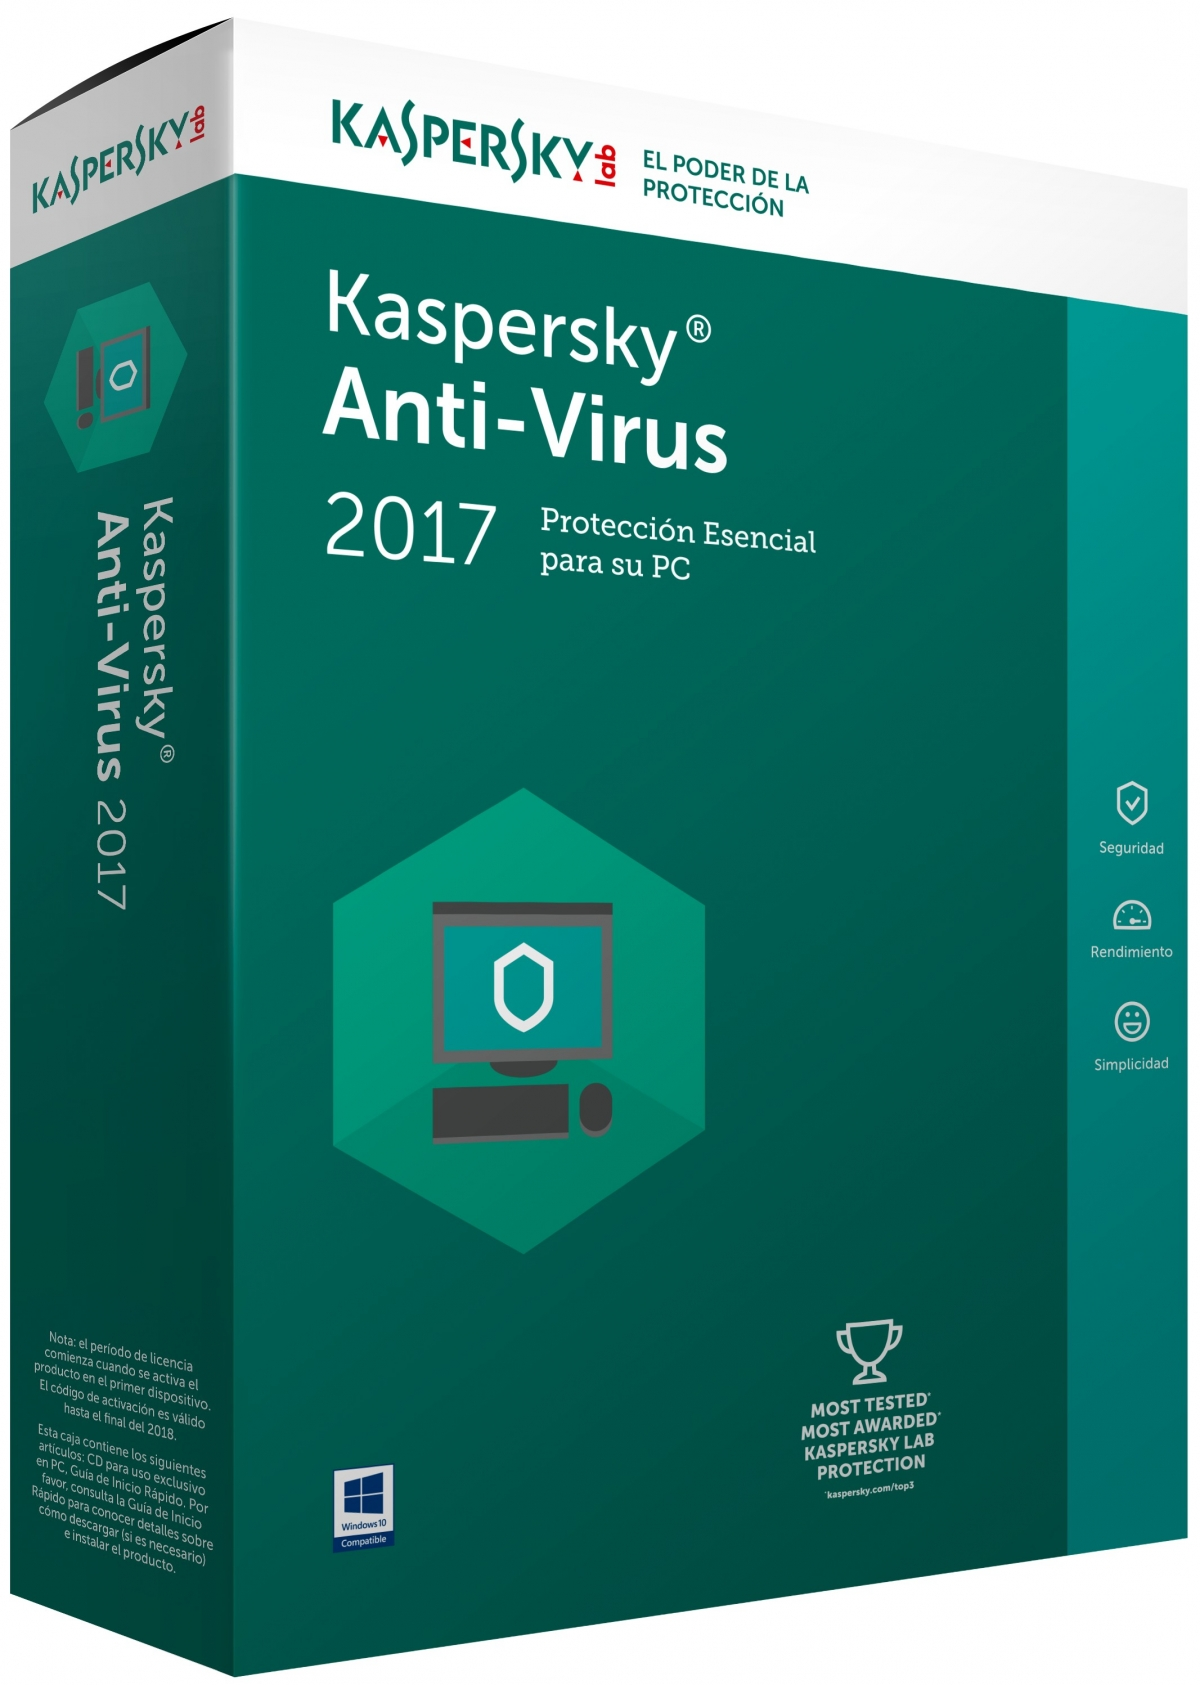 anti virus Bitdefender antivirus plus 2019 is the best antivirus software for computers running windows 10 it found 99 percent of the malware threats we used during our protection tests and earned perfect or near-perfect scores in other test lab results, like av-test and av-comparatives.